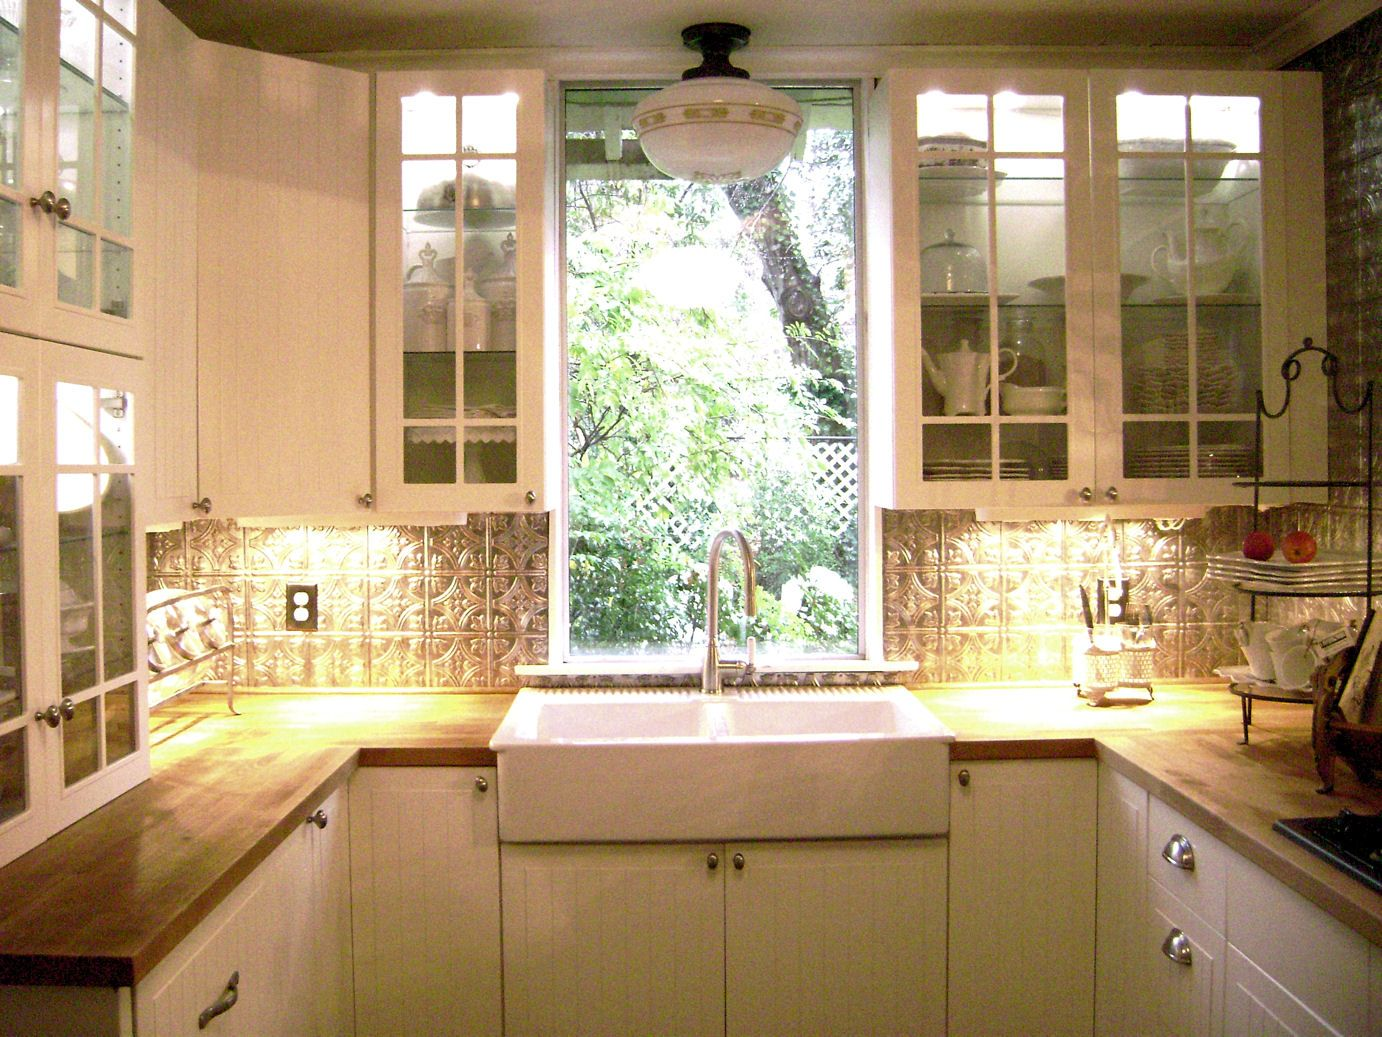 small remodeled kitchens small kitchen remodels 17 best images about kitchen on pinterest modern kitchen cabinets small kitchens and cabinets